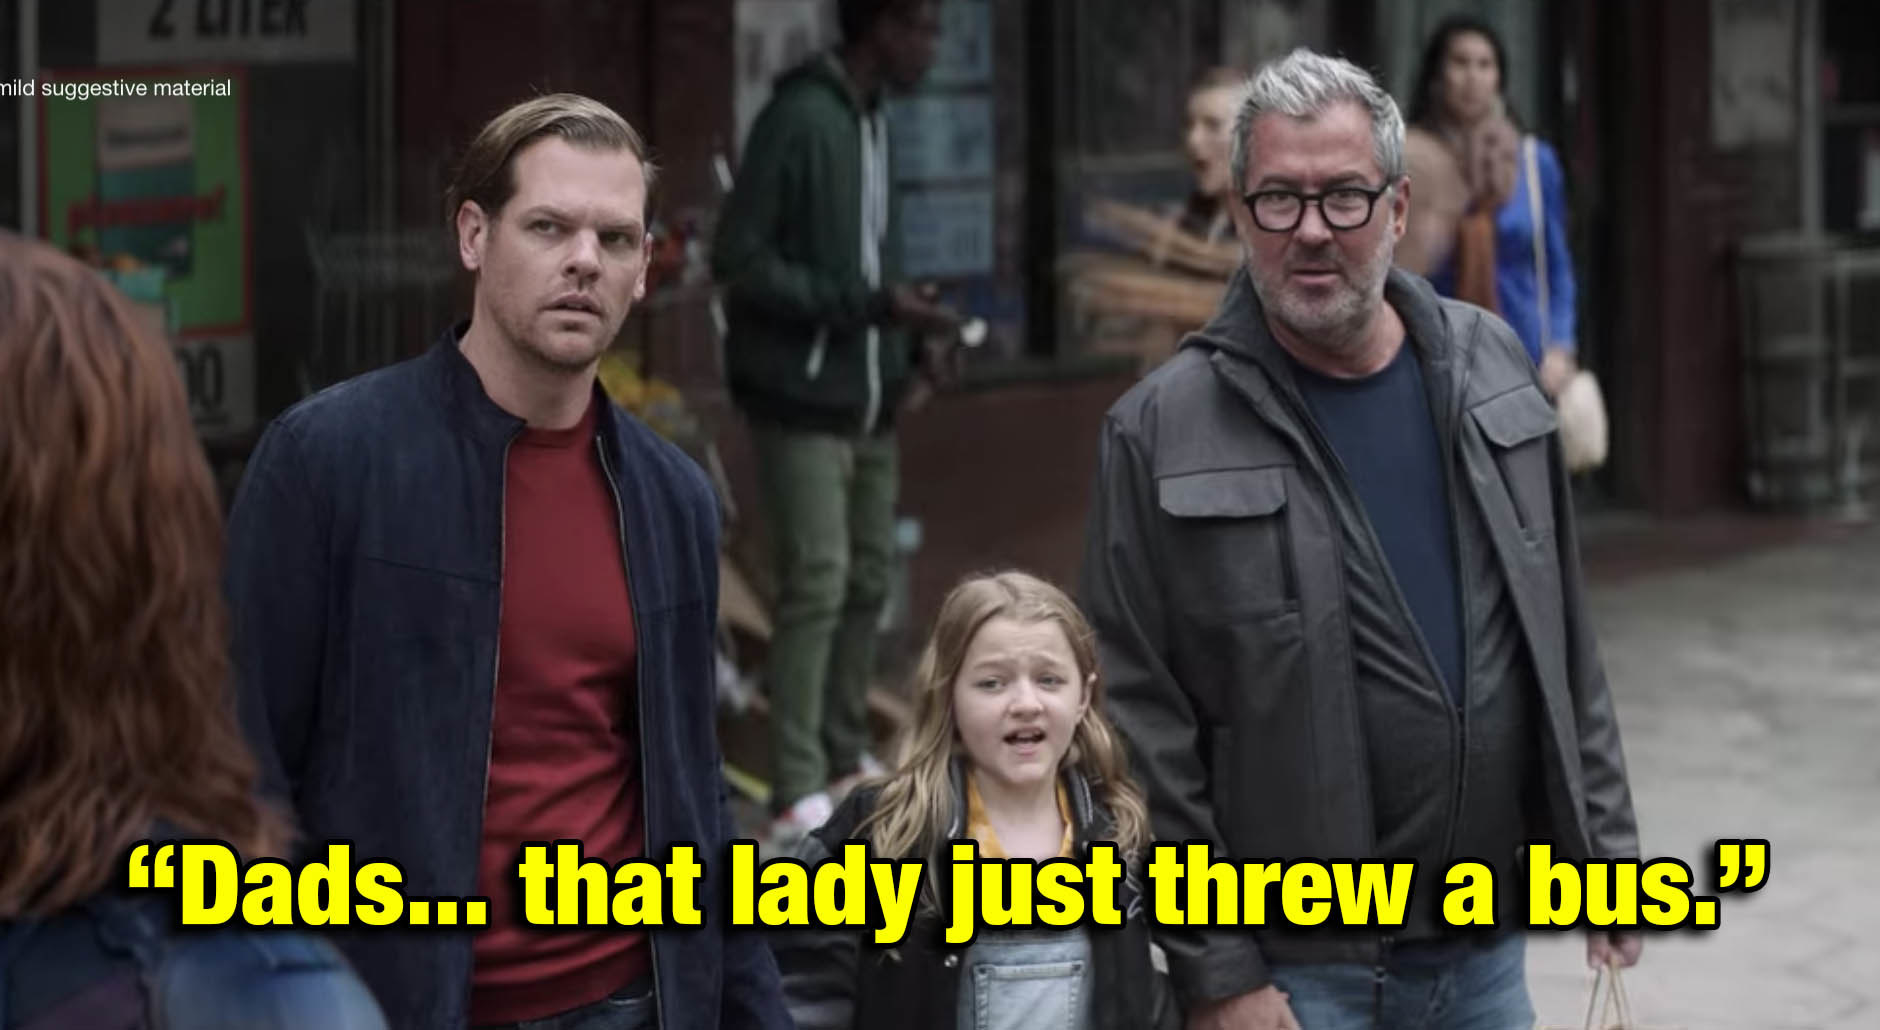 a little girl pointing out to her gay dads that a superhero just threw a whole ass bus